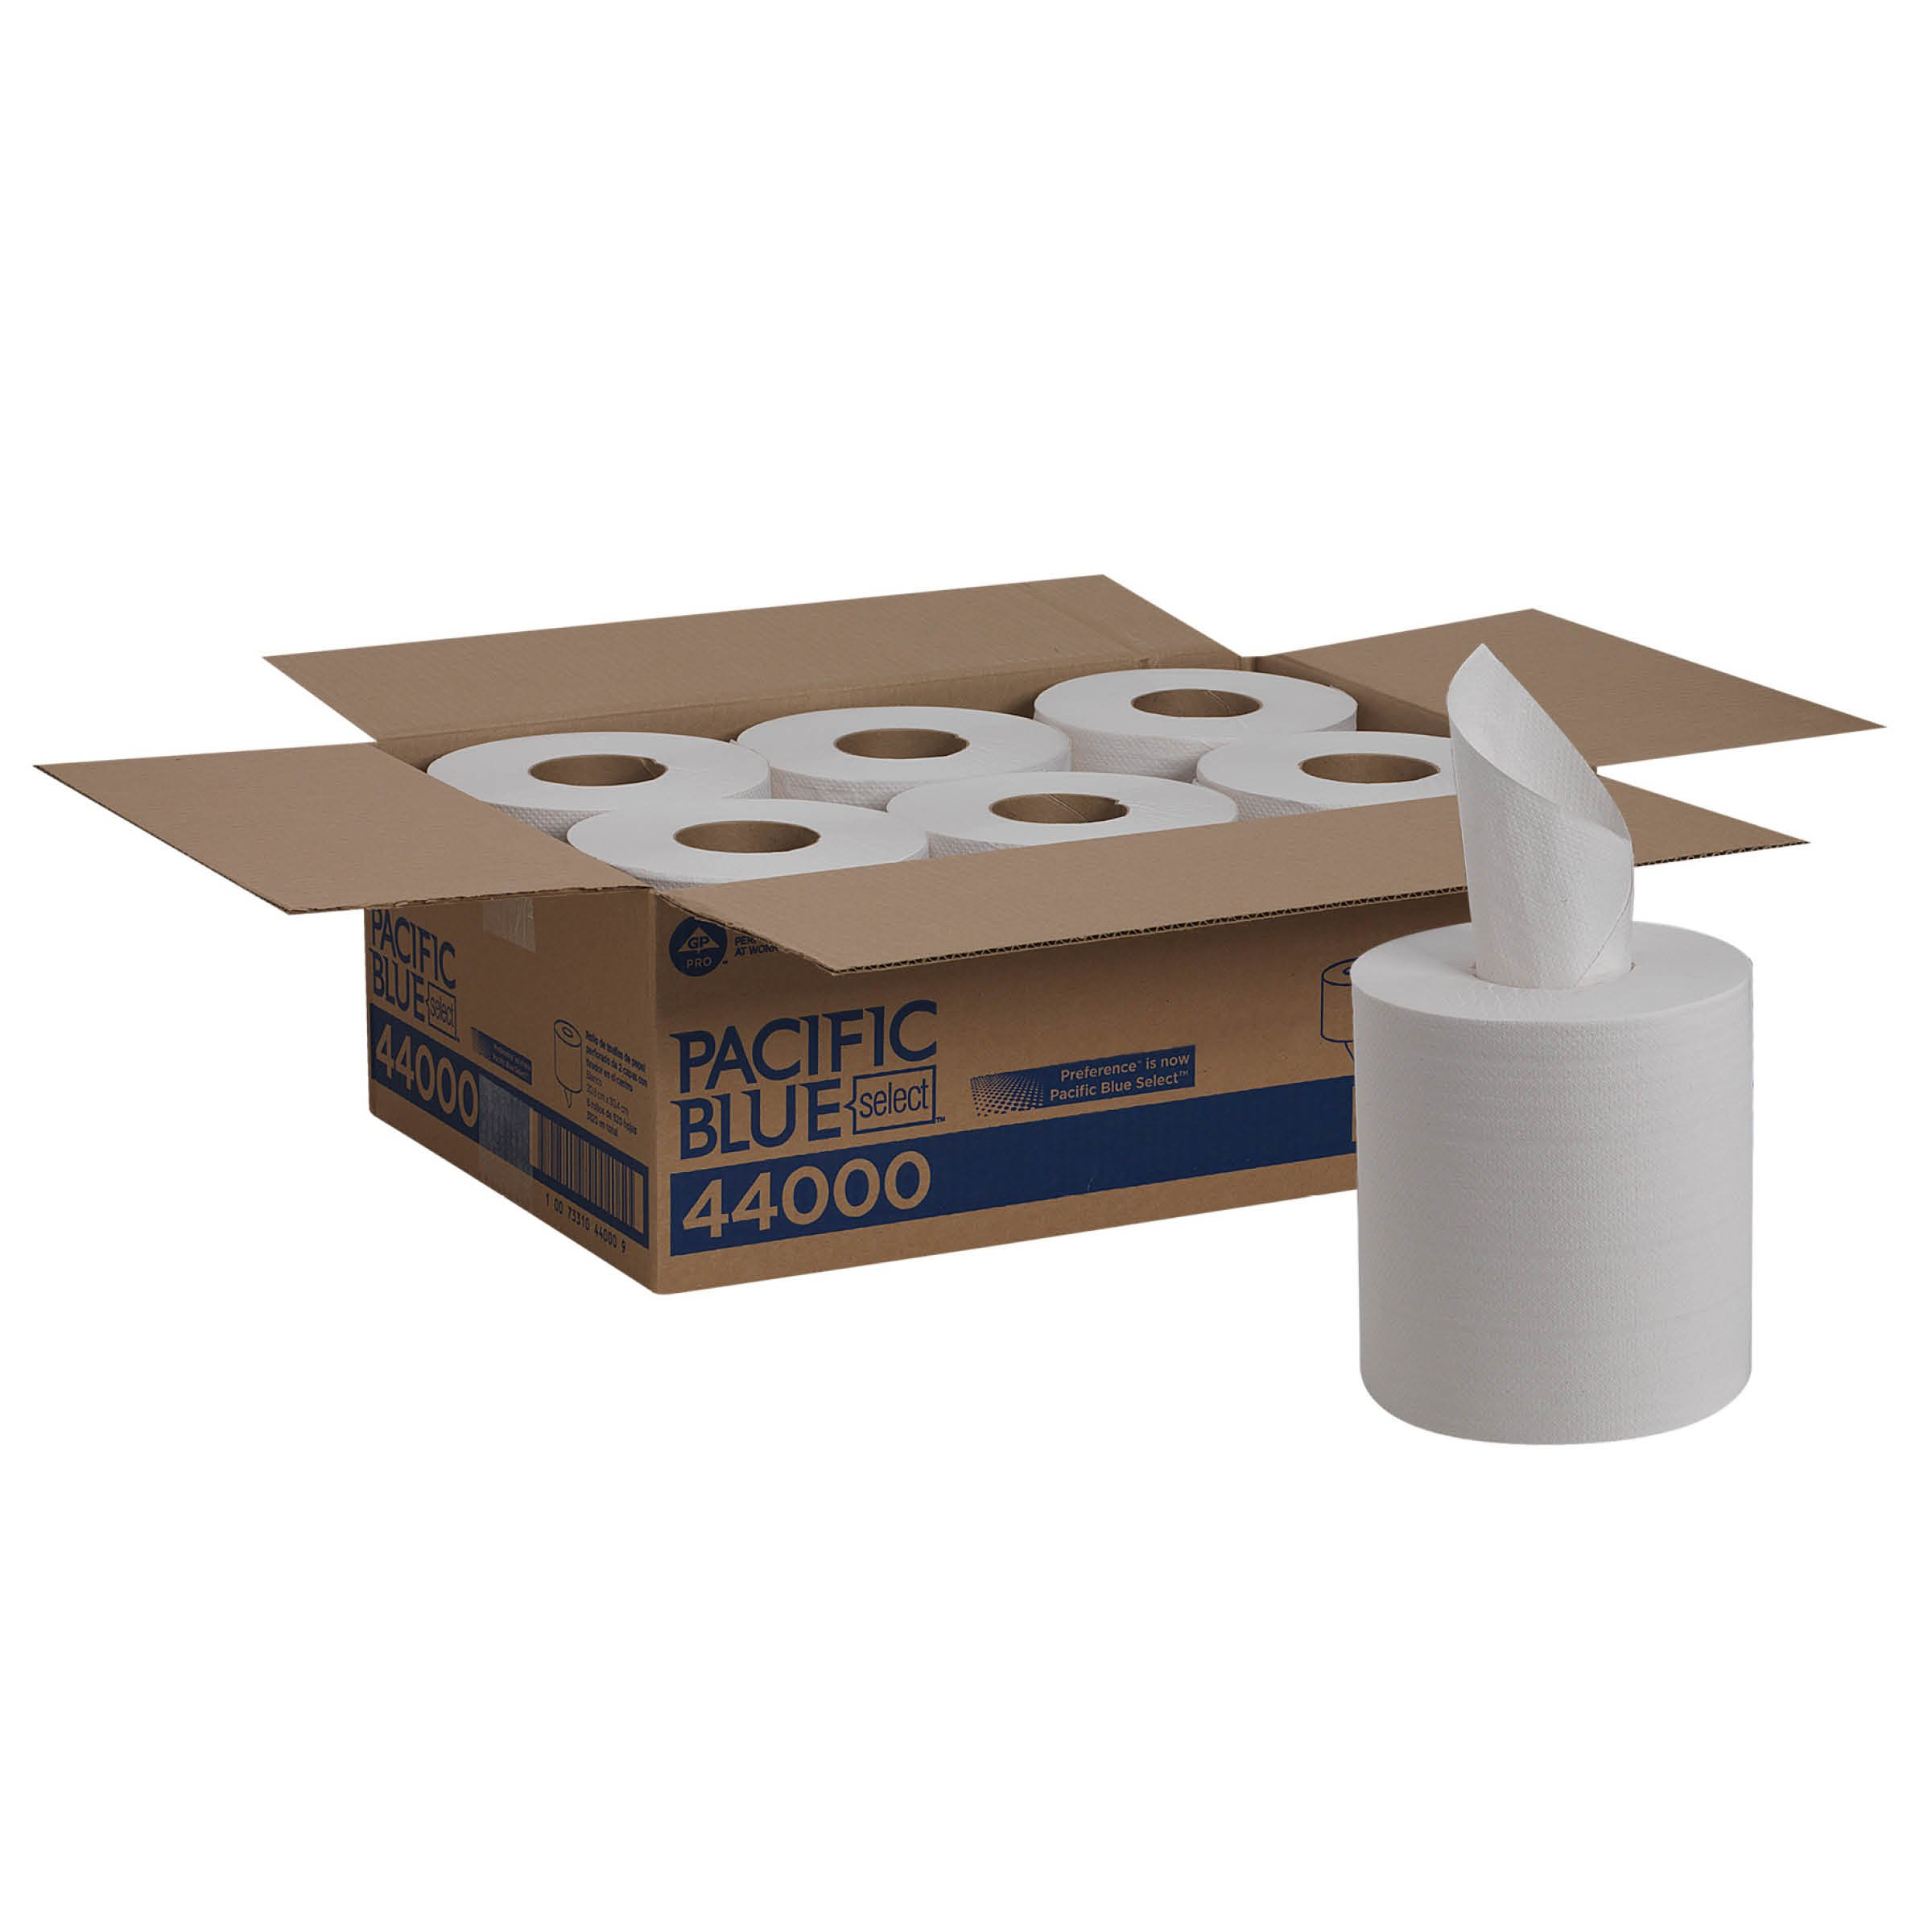 Pacific Blue Select Centerpull 2-Ply Paper Towel (previously branded Preference) by GP PRO; White, 44000; 520 sheets per roll, 6 rolls per case